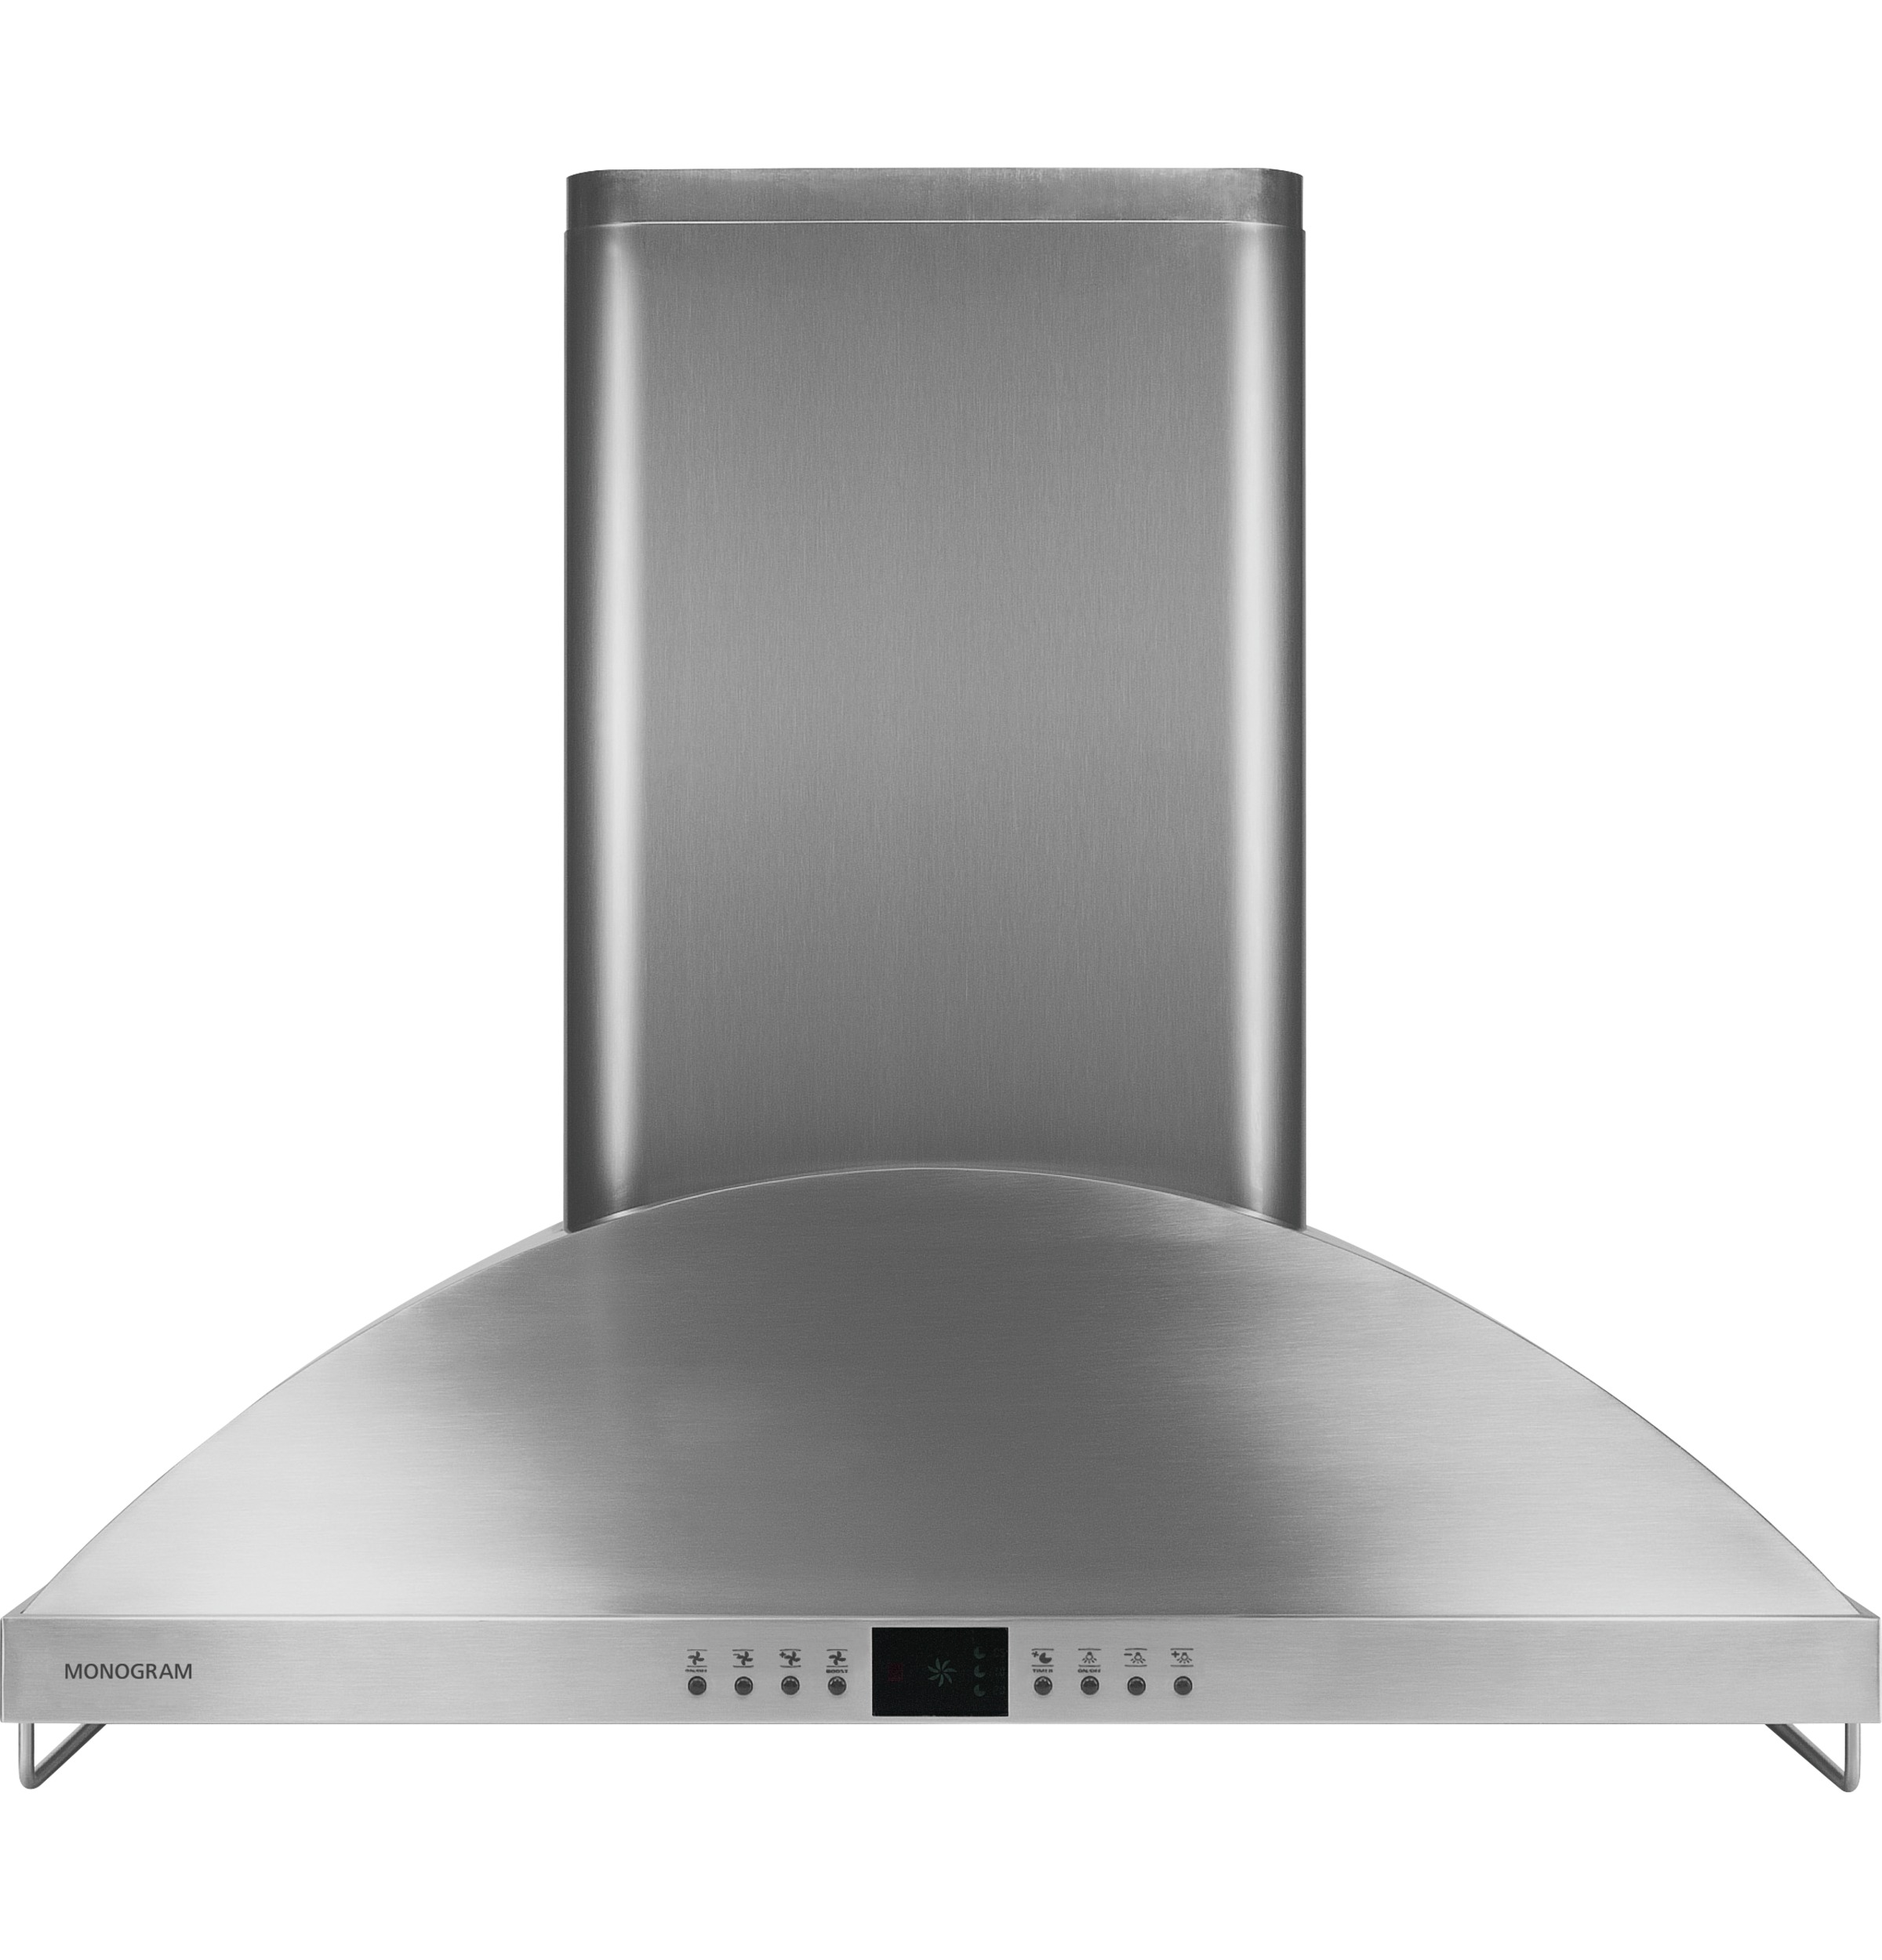 "Monogram Monogram 36"" Wall-Mounted Vent Hood"